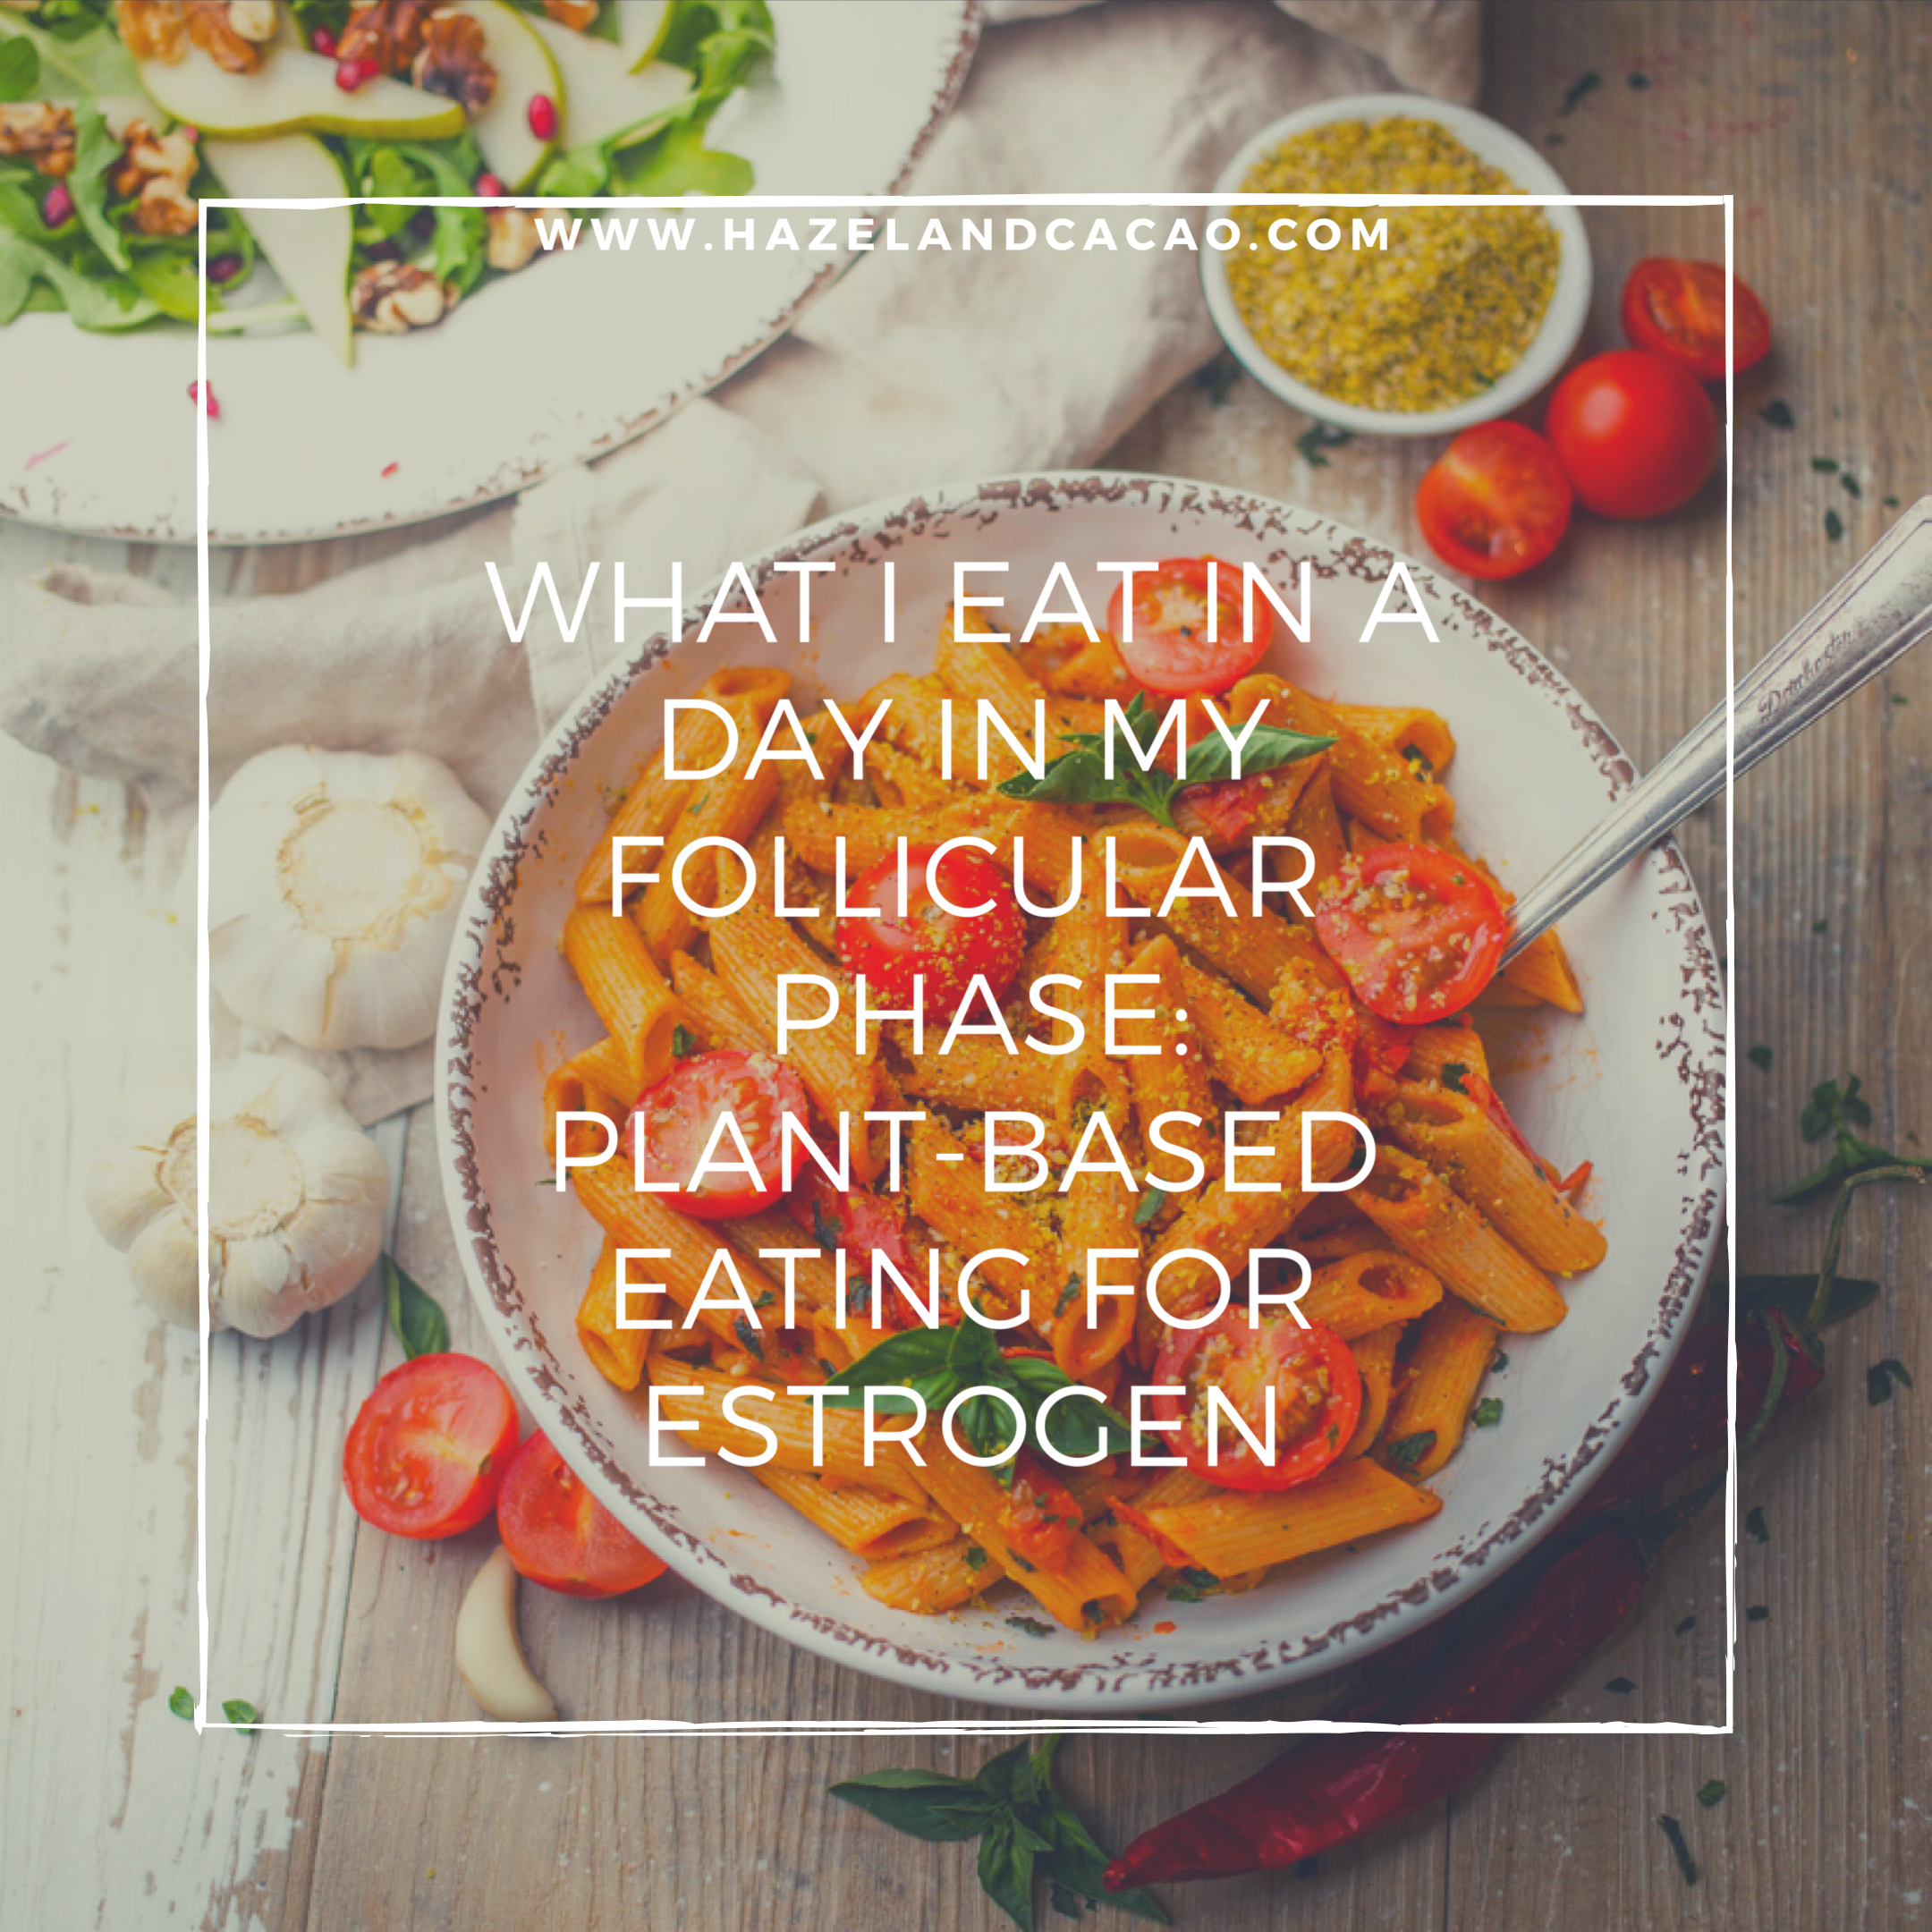 What I Eat in a Day in my Follicular Phase. Plant-Based eating for Estrogen